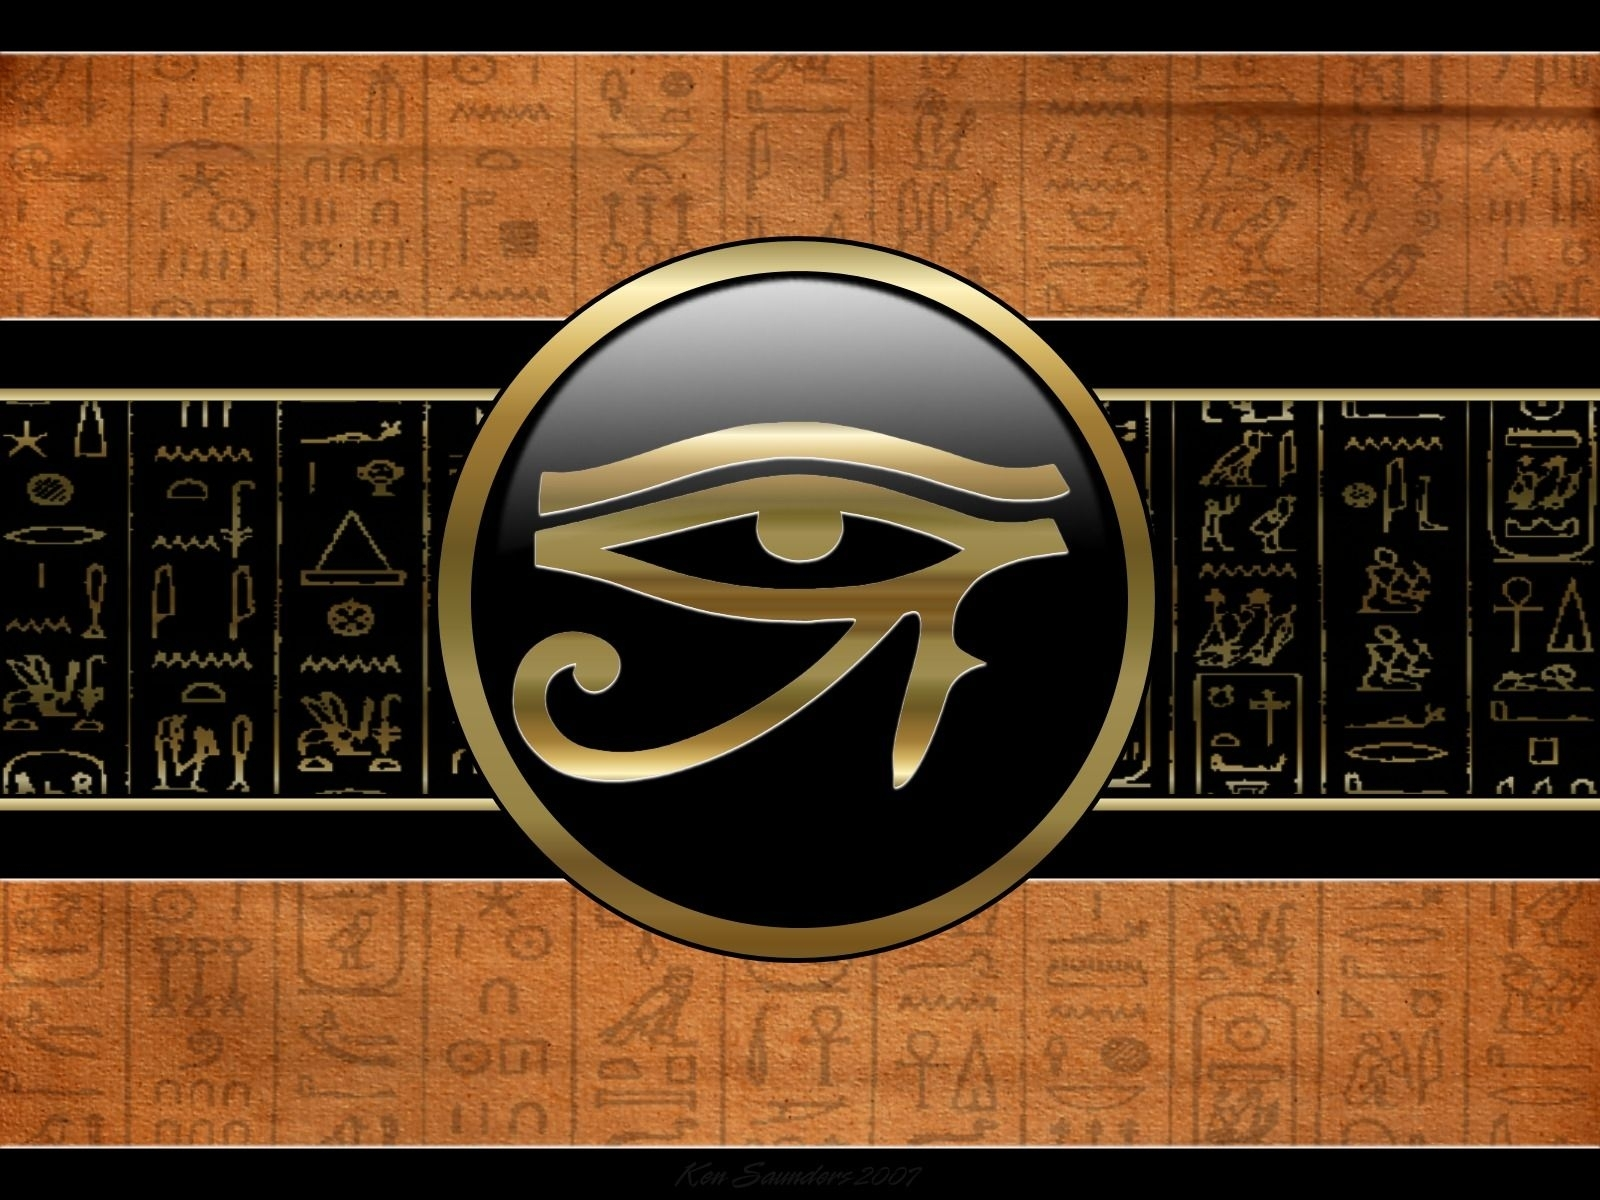 egyptian wallpapers - wallpaper cave | all wallpapers | pinterest